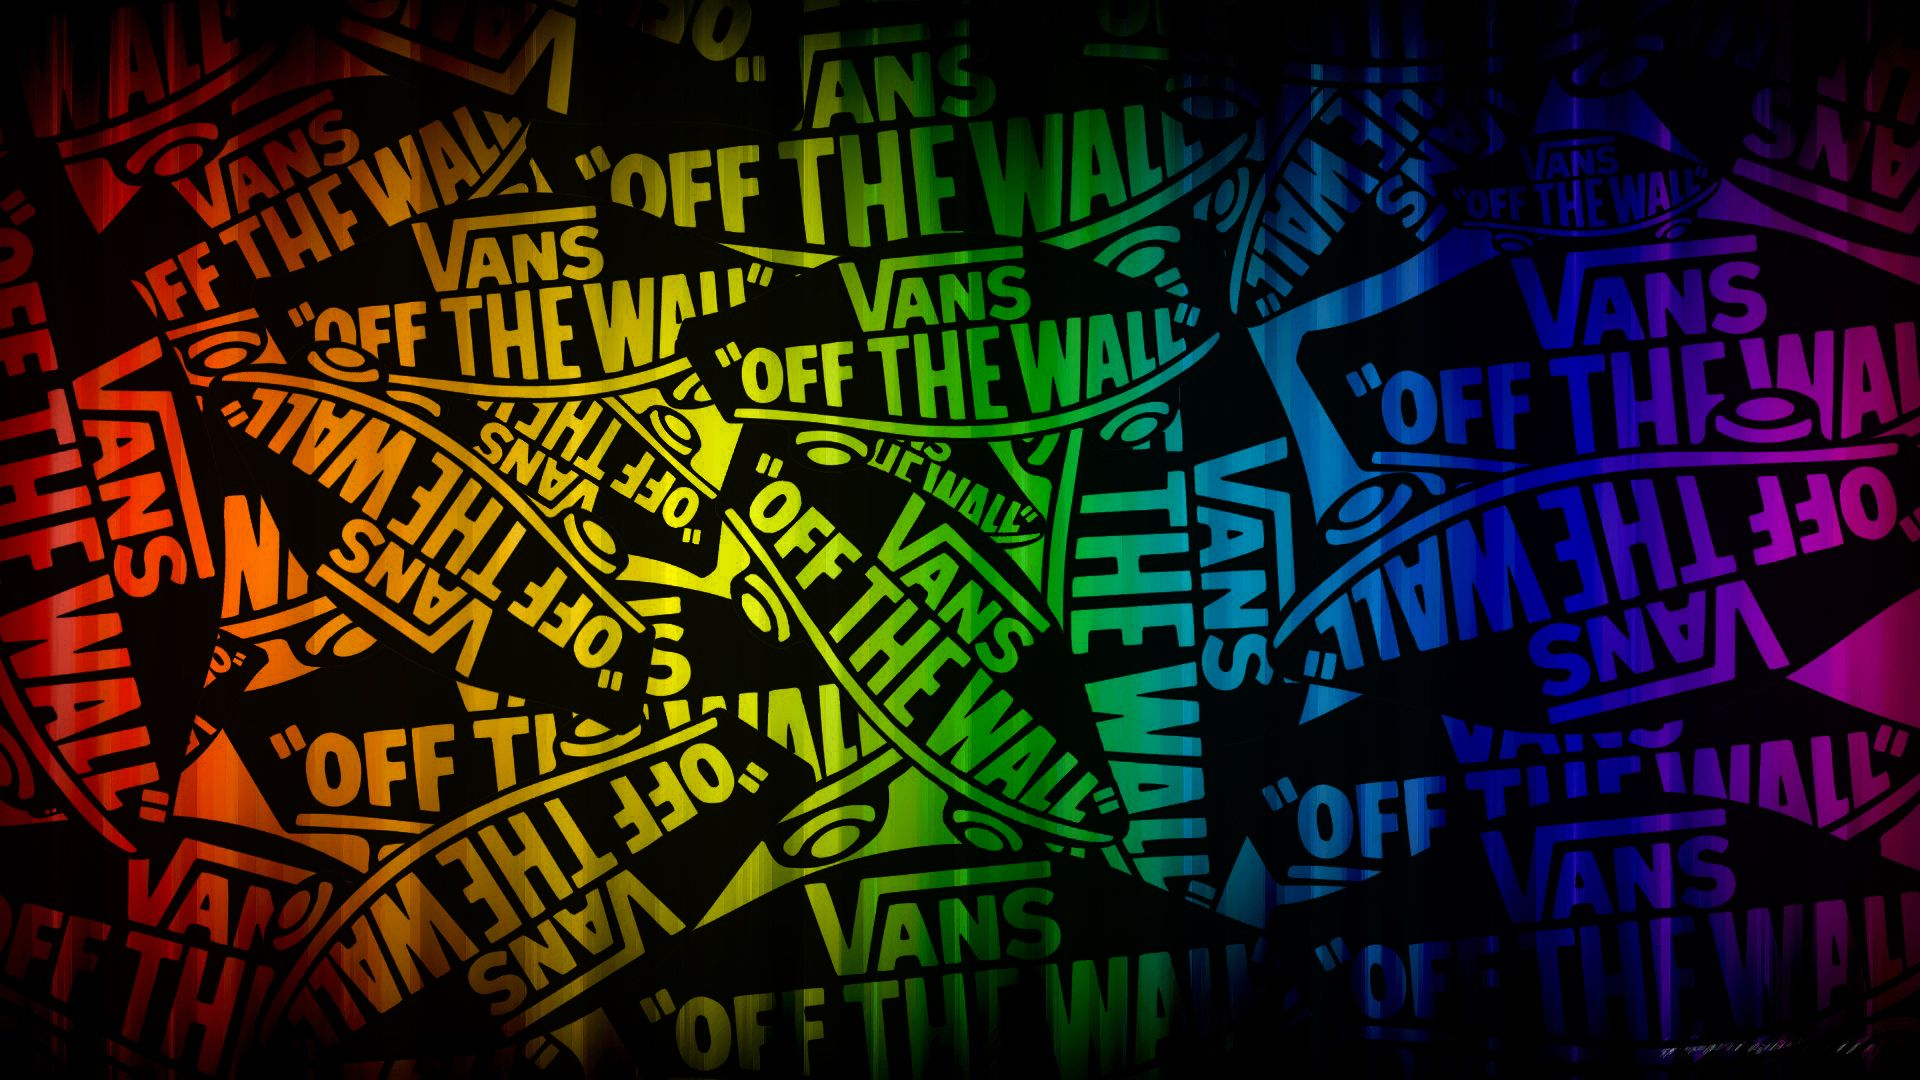 Pin By Alexis Panetta On Vans Vans Off The Wall Logo Wallpaper